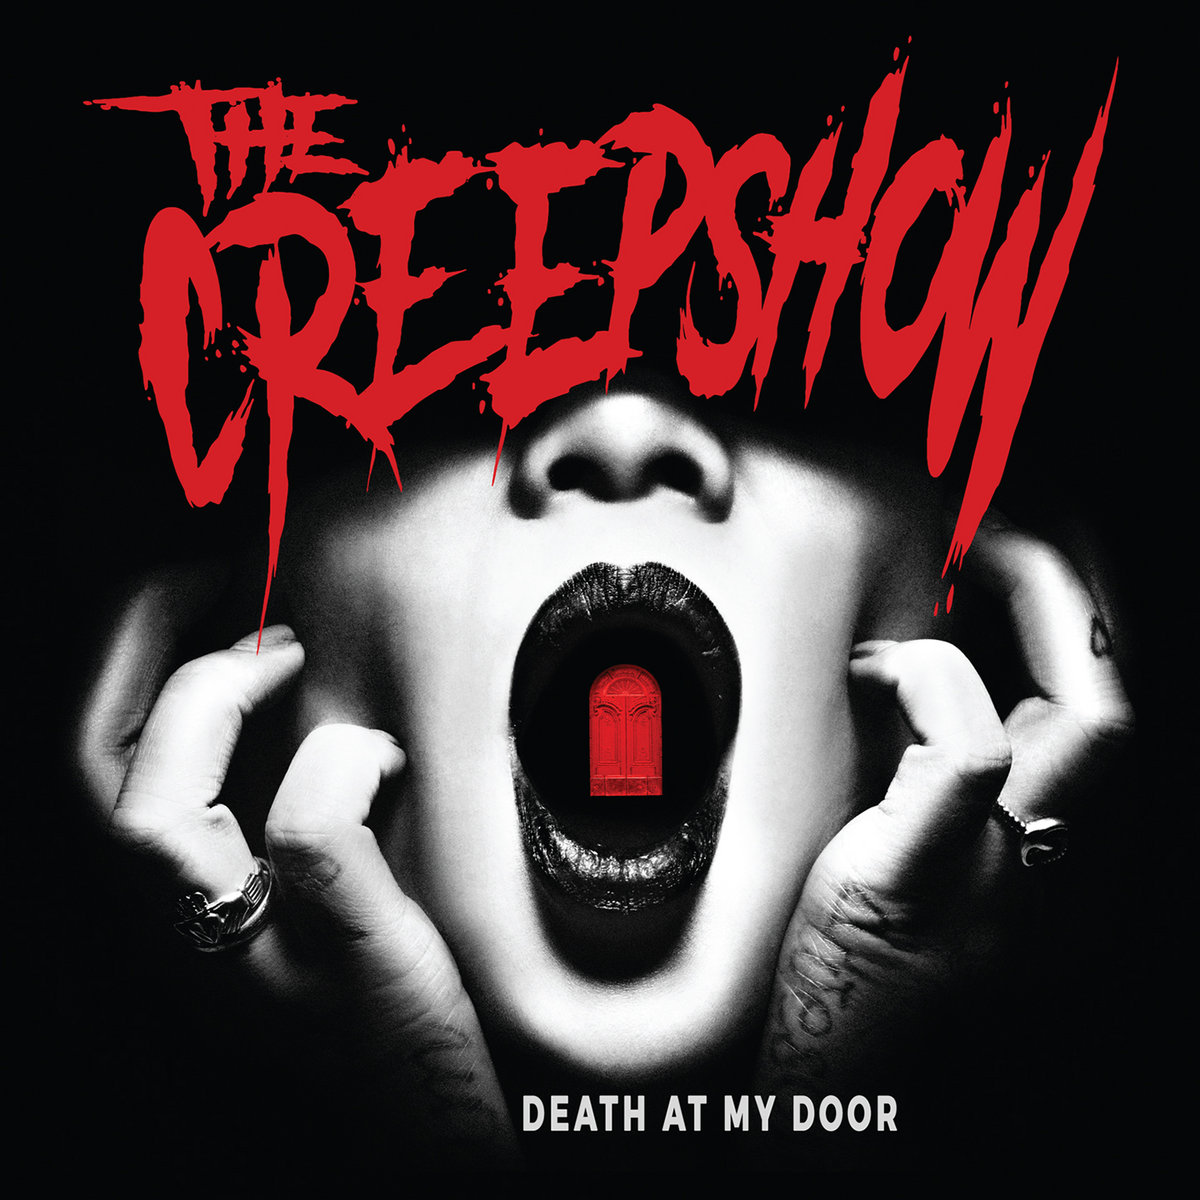 Death At My Door. by The Creepshow  sc 1 st  The Creepshow - Bandc& & Death At My Door | The Creepshow